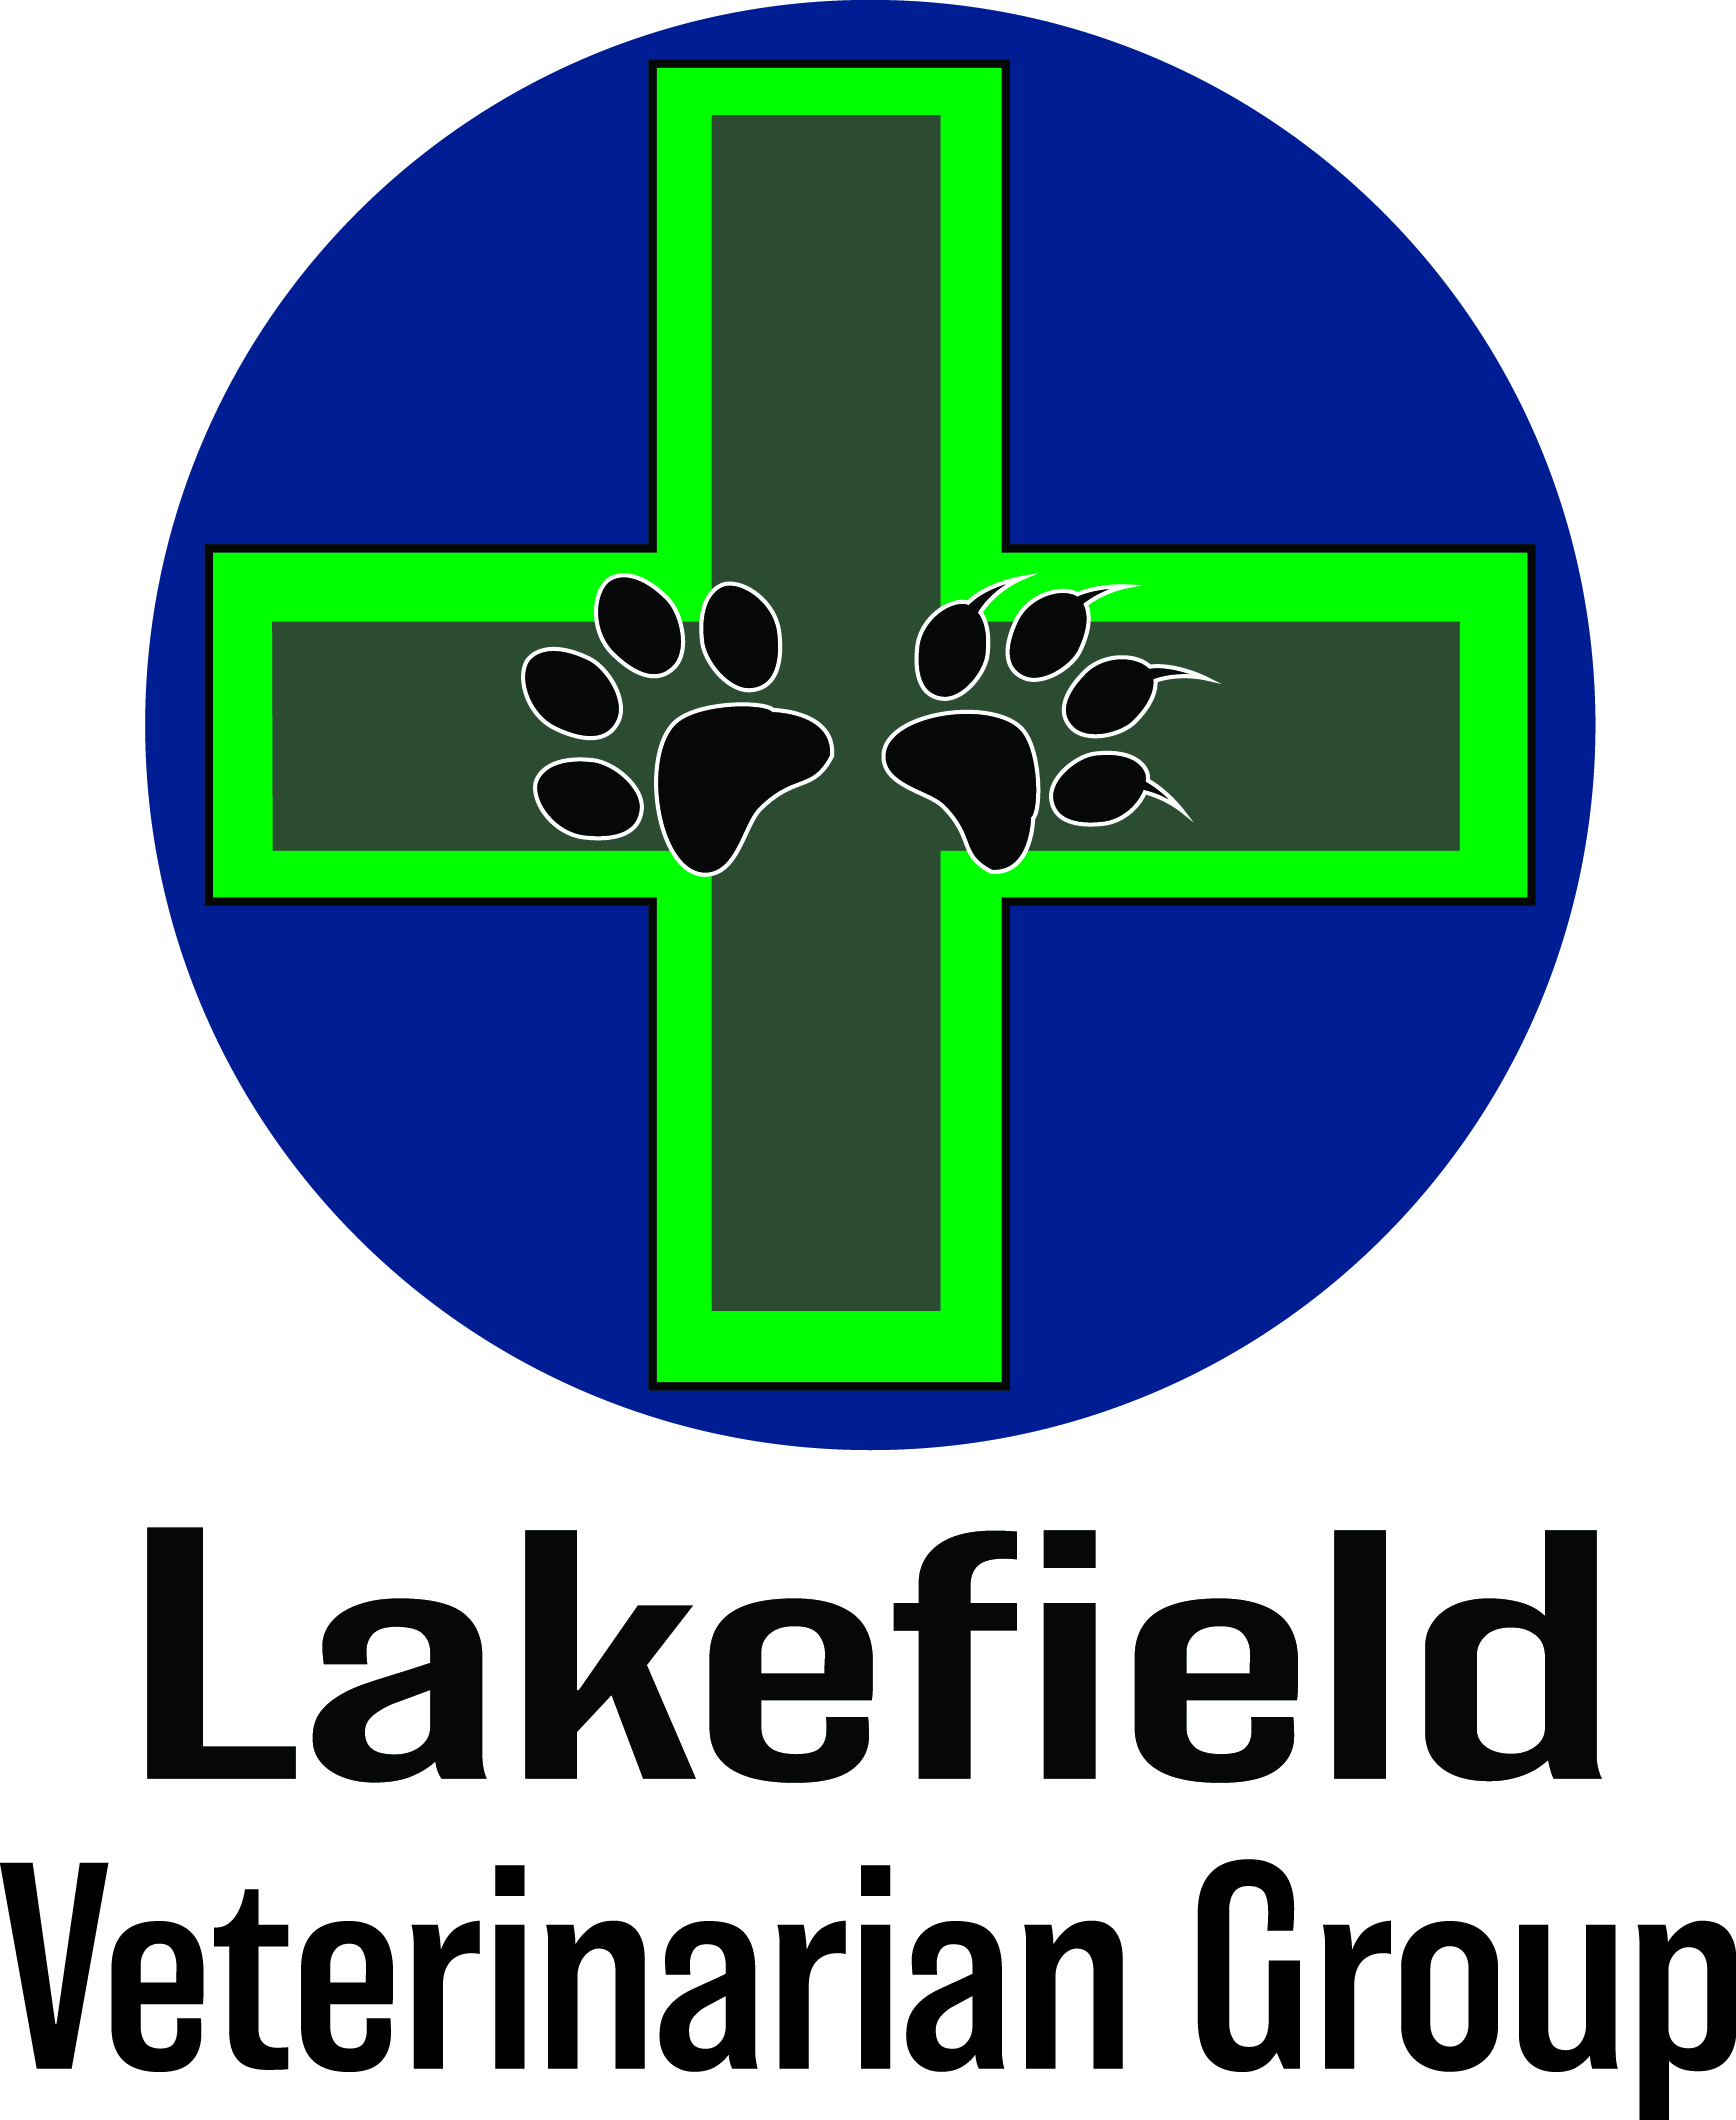 Logo Design by John Suits - Entry No. 1 in the Logo Design Contest Inspiring Logo Design for Lakefield Veterinary Group.